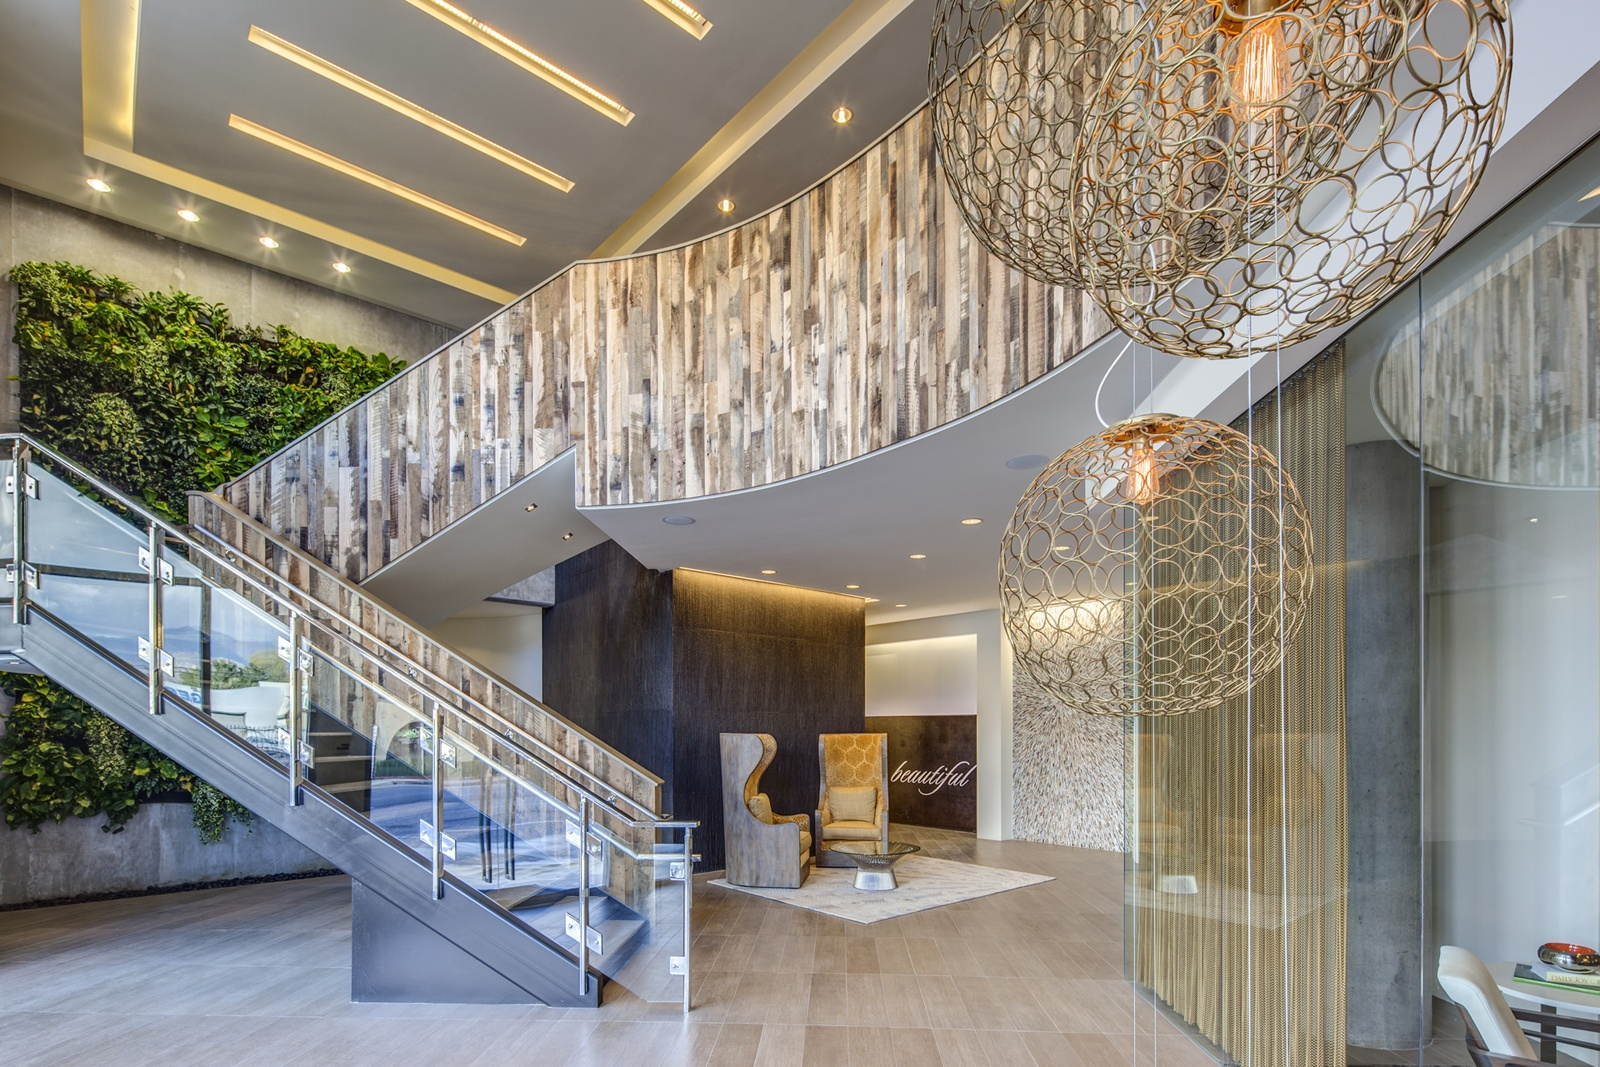 Design Strategies That Promote Health and Wellness and Elevate the Guest Experience